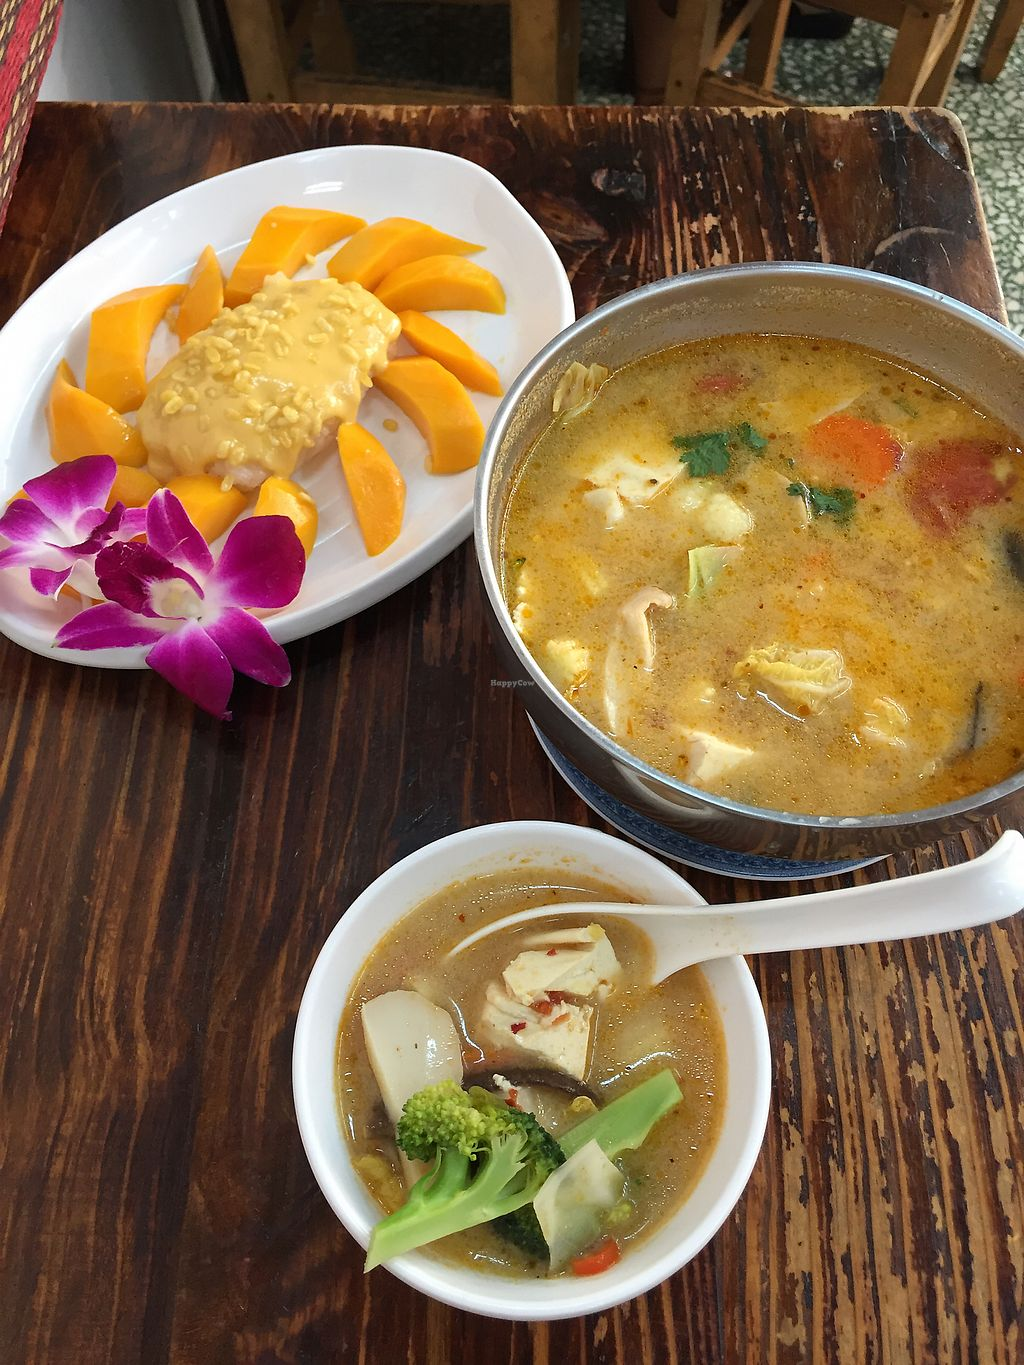 "Photo of Thai Vegetarian Food  by <a href=""/members/profile/Aliwg"">Aliwg</a> <br/>Mango sticky rice dessert and tom yum soup <br/> April 4, 2018  - <a href='/contact/abuse/image/52173/380500'>Report</a>"